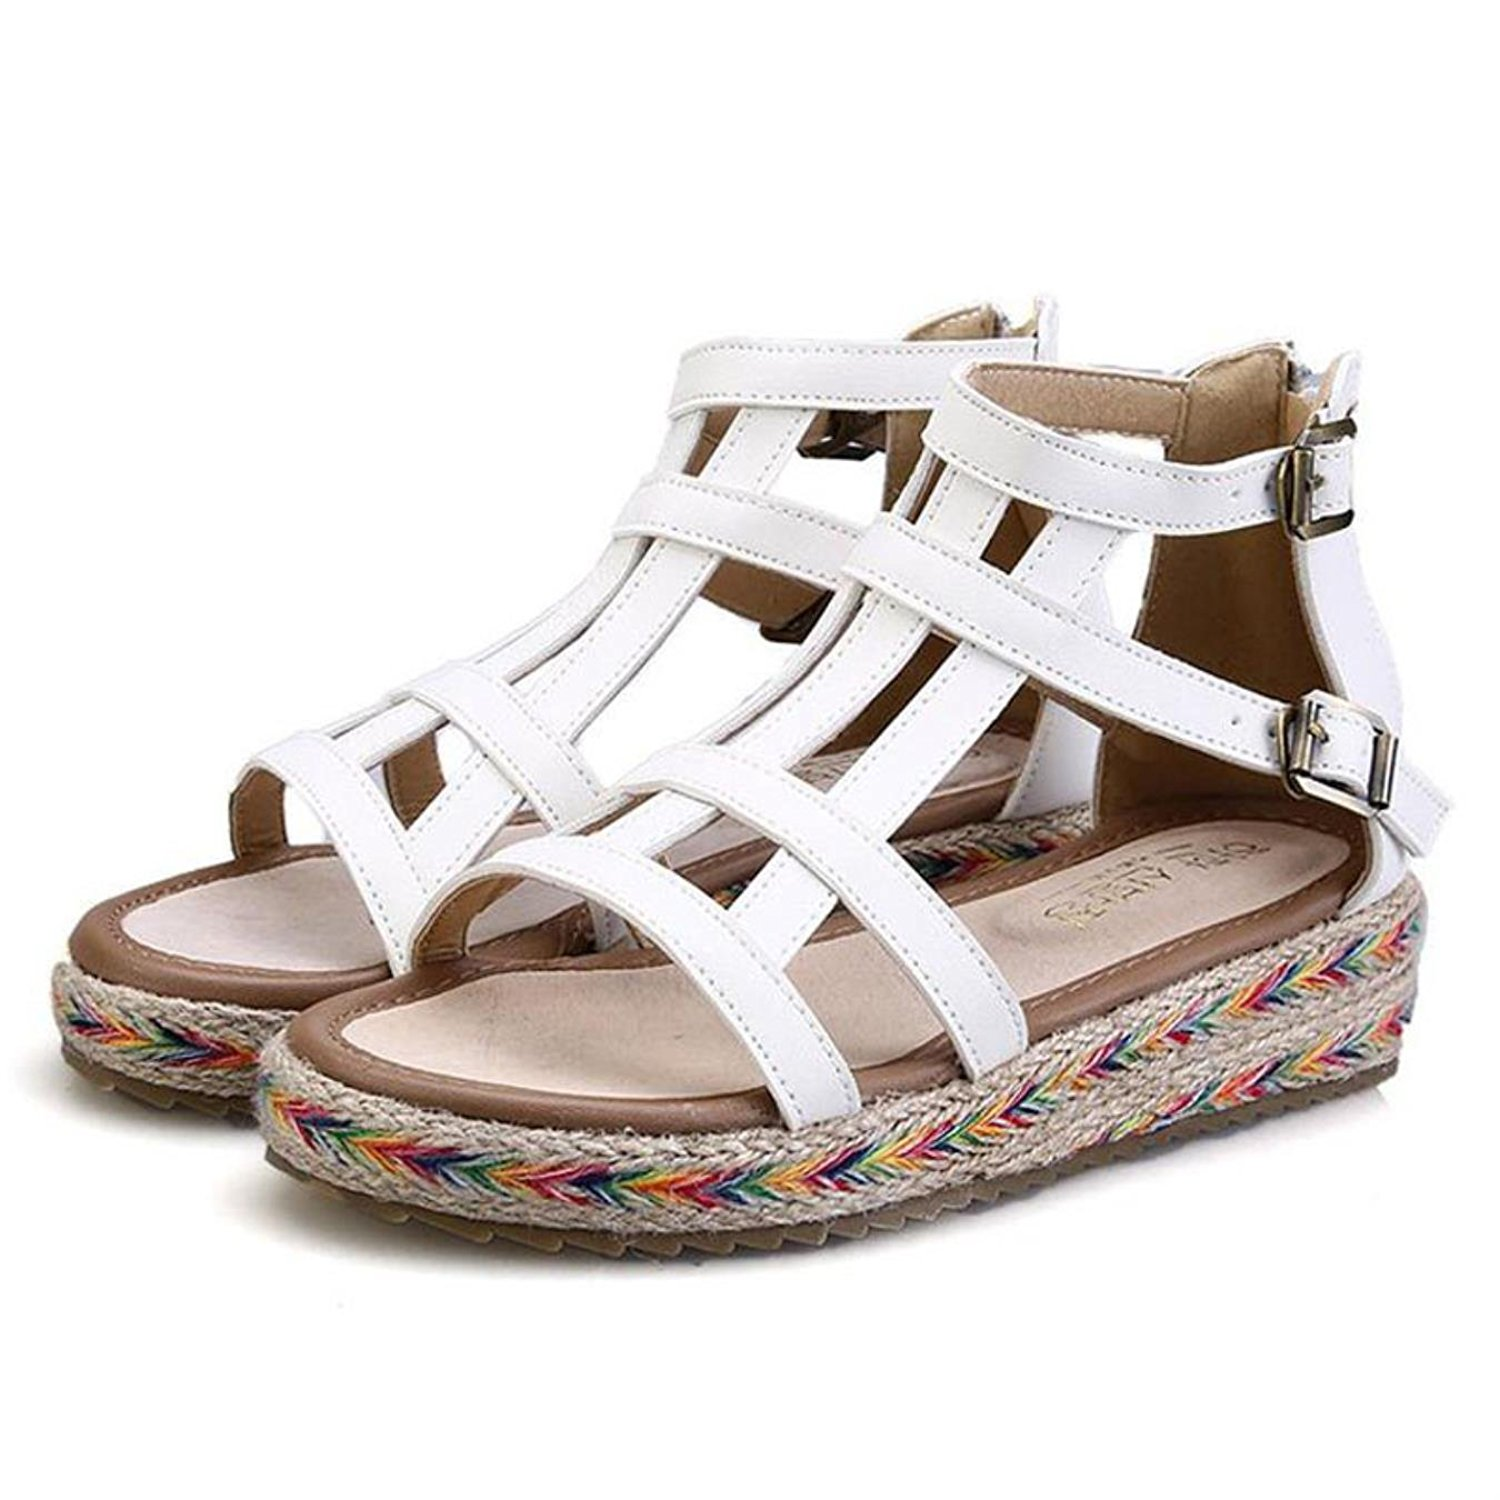 a677945bbf7f Get Quotations · Bandage Gladiator Sandals Summer Flat Sandals Boots  Fretwork Summer Women Causal Shoes Buckle Strap Rome Shoes